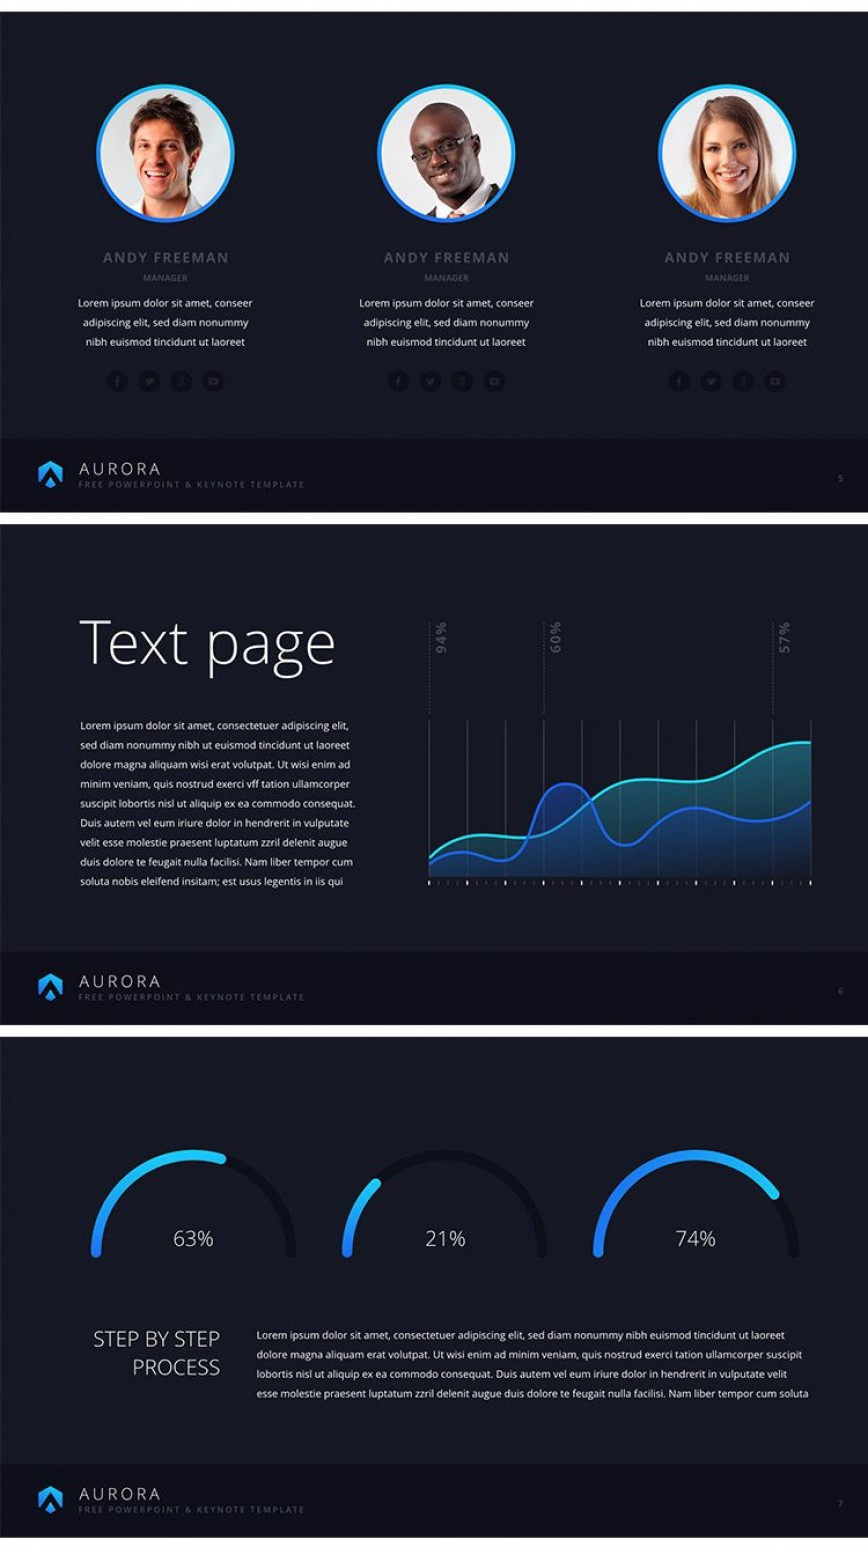 003 Impressive Social Media Trend 2017  Powerpoint Template Free High Definition -